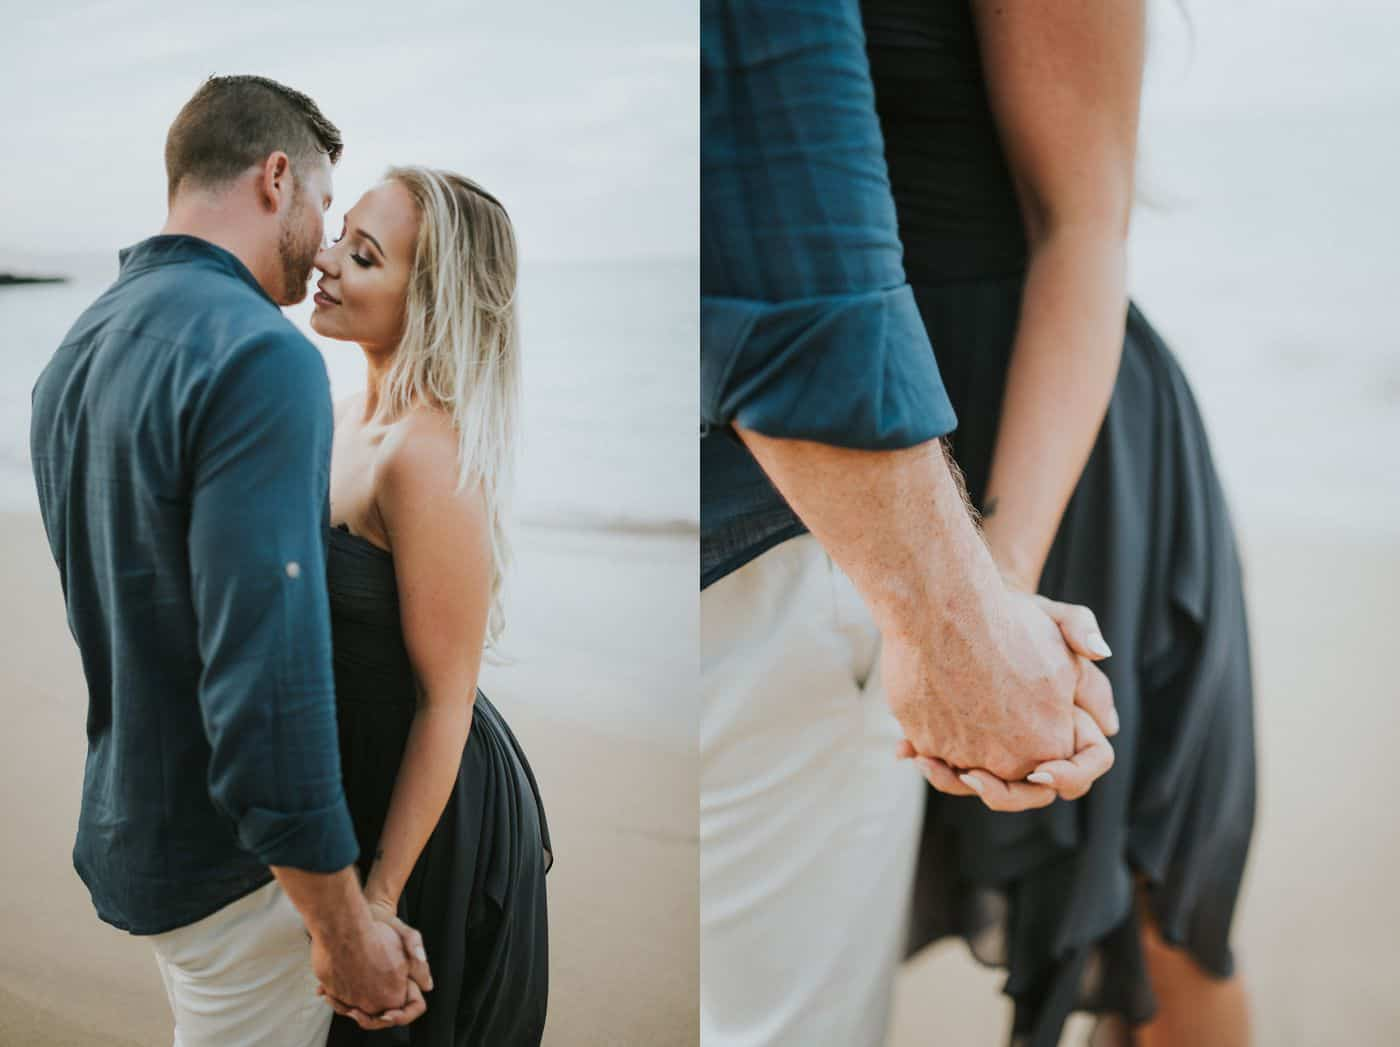 Proposal Photo Tips With A Professional Photographer